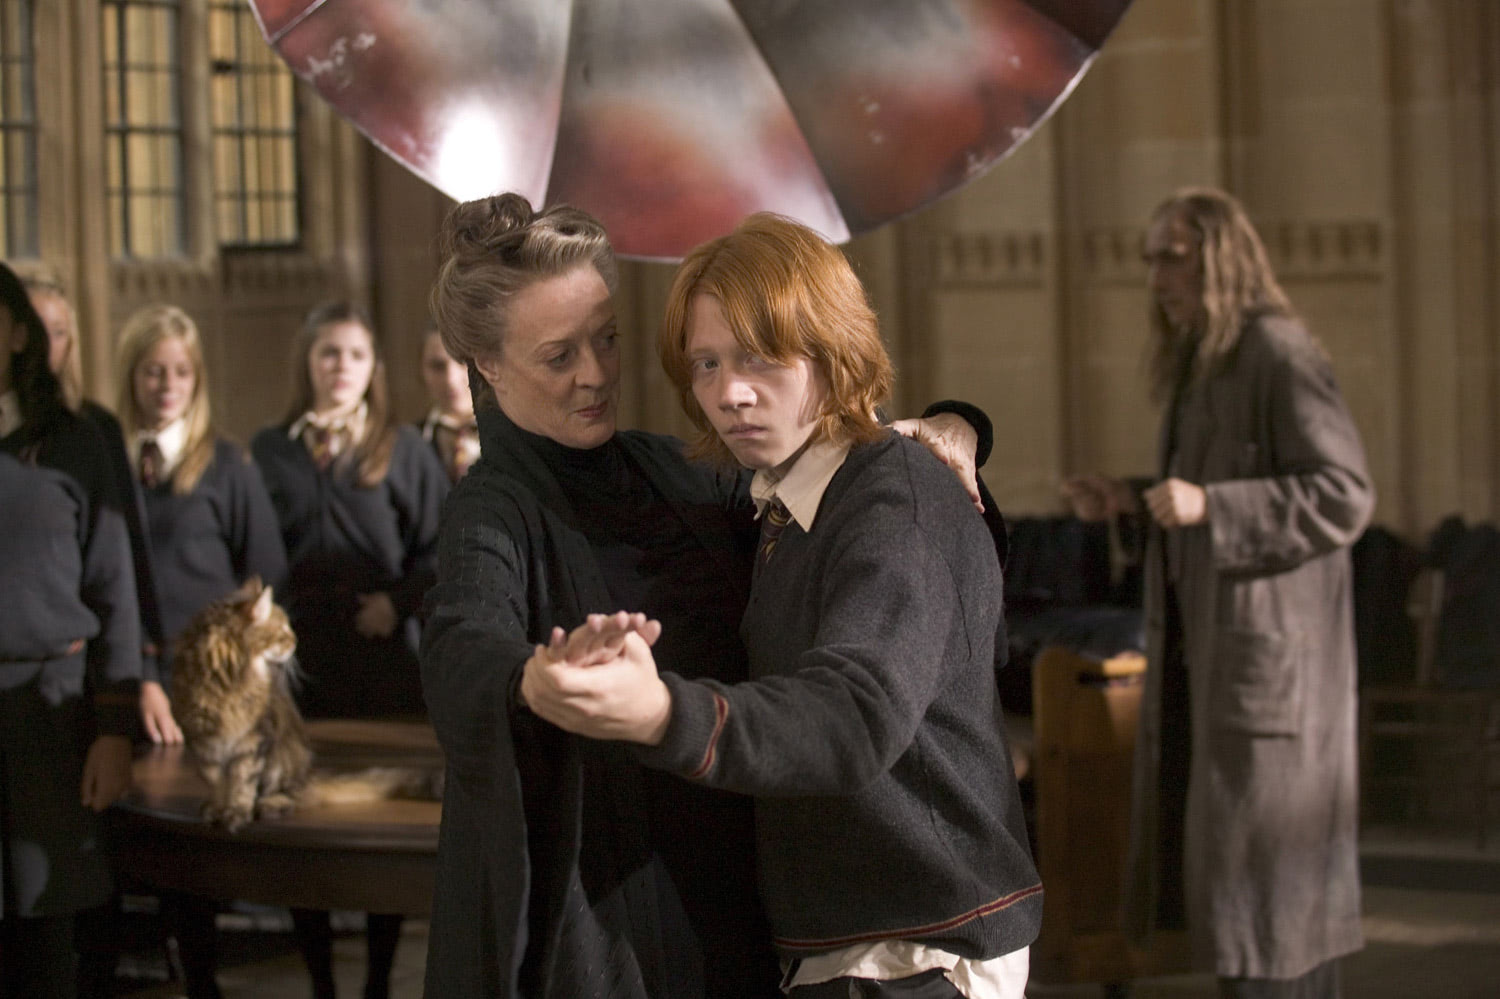 Professor McGonagall and Ron dance